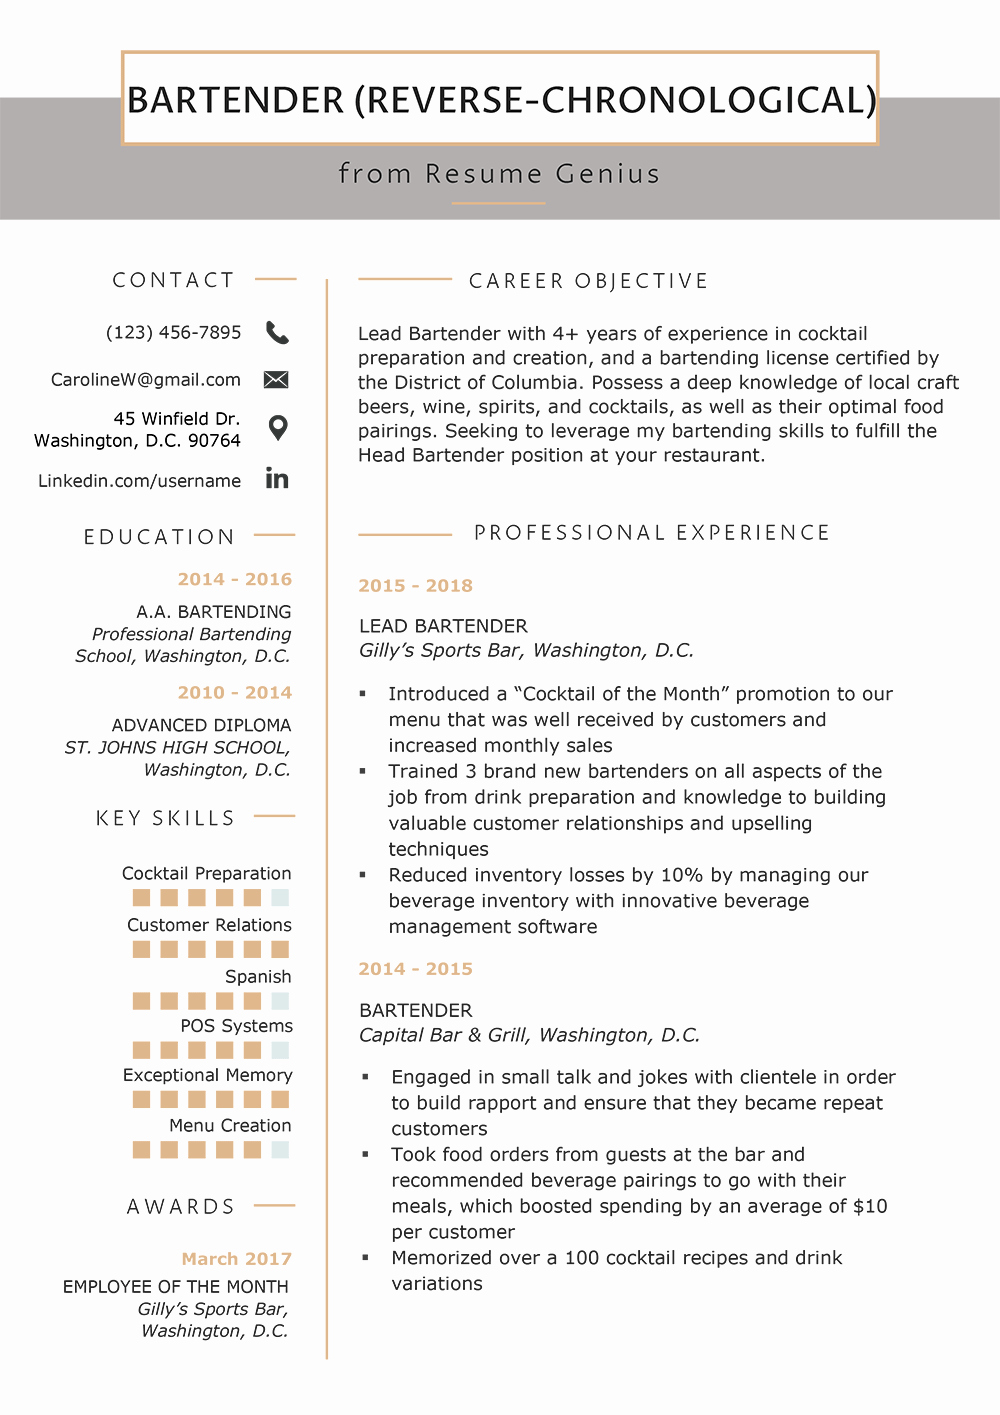 Reverse Chronological Resume Template Beautiful Resume format Mega Guide